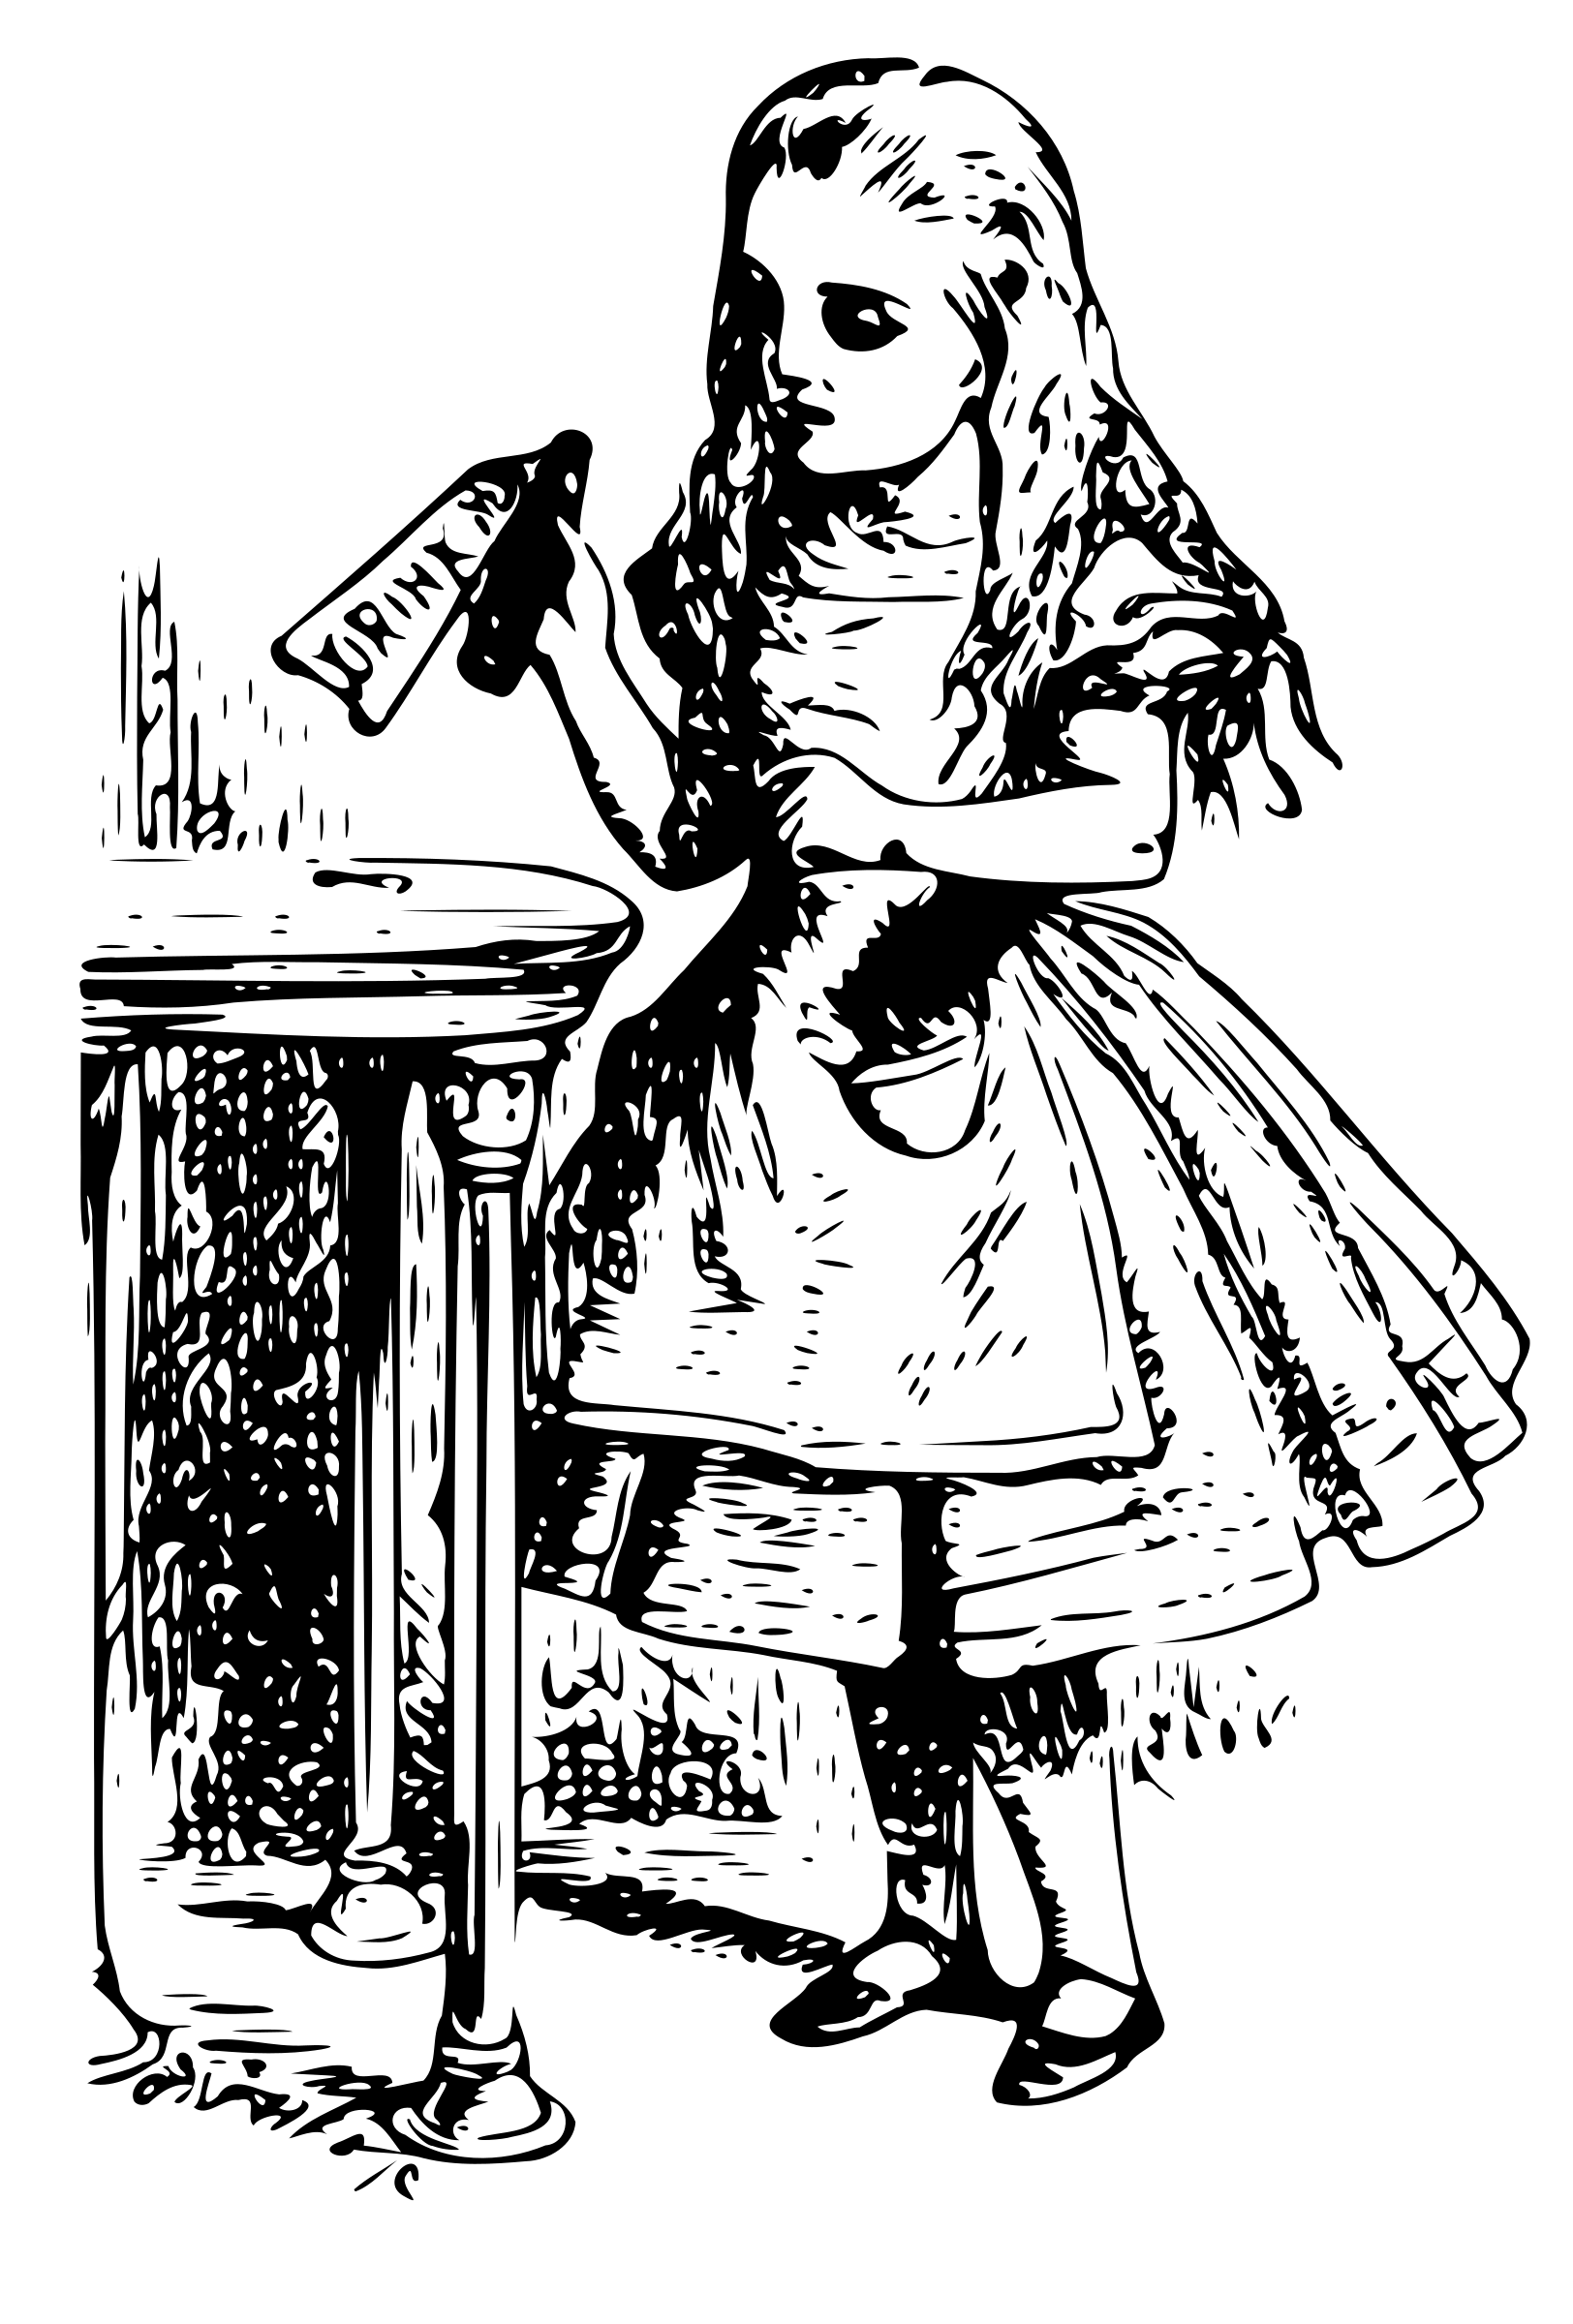 See clipart alice in wonderland. Vintage transparent png stickpng